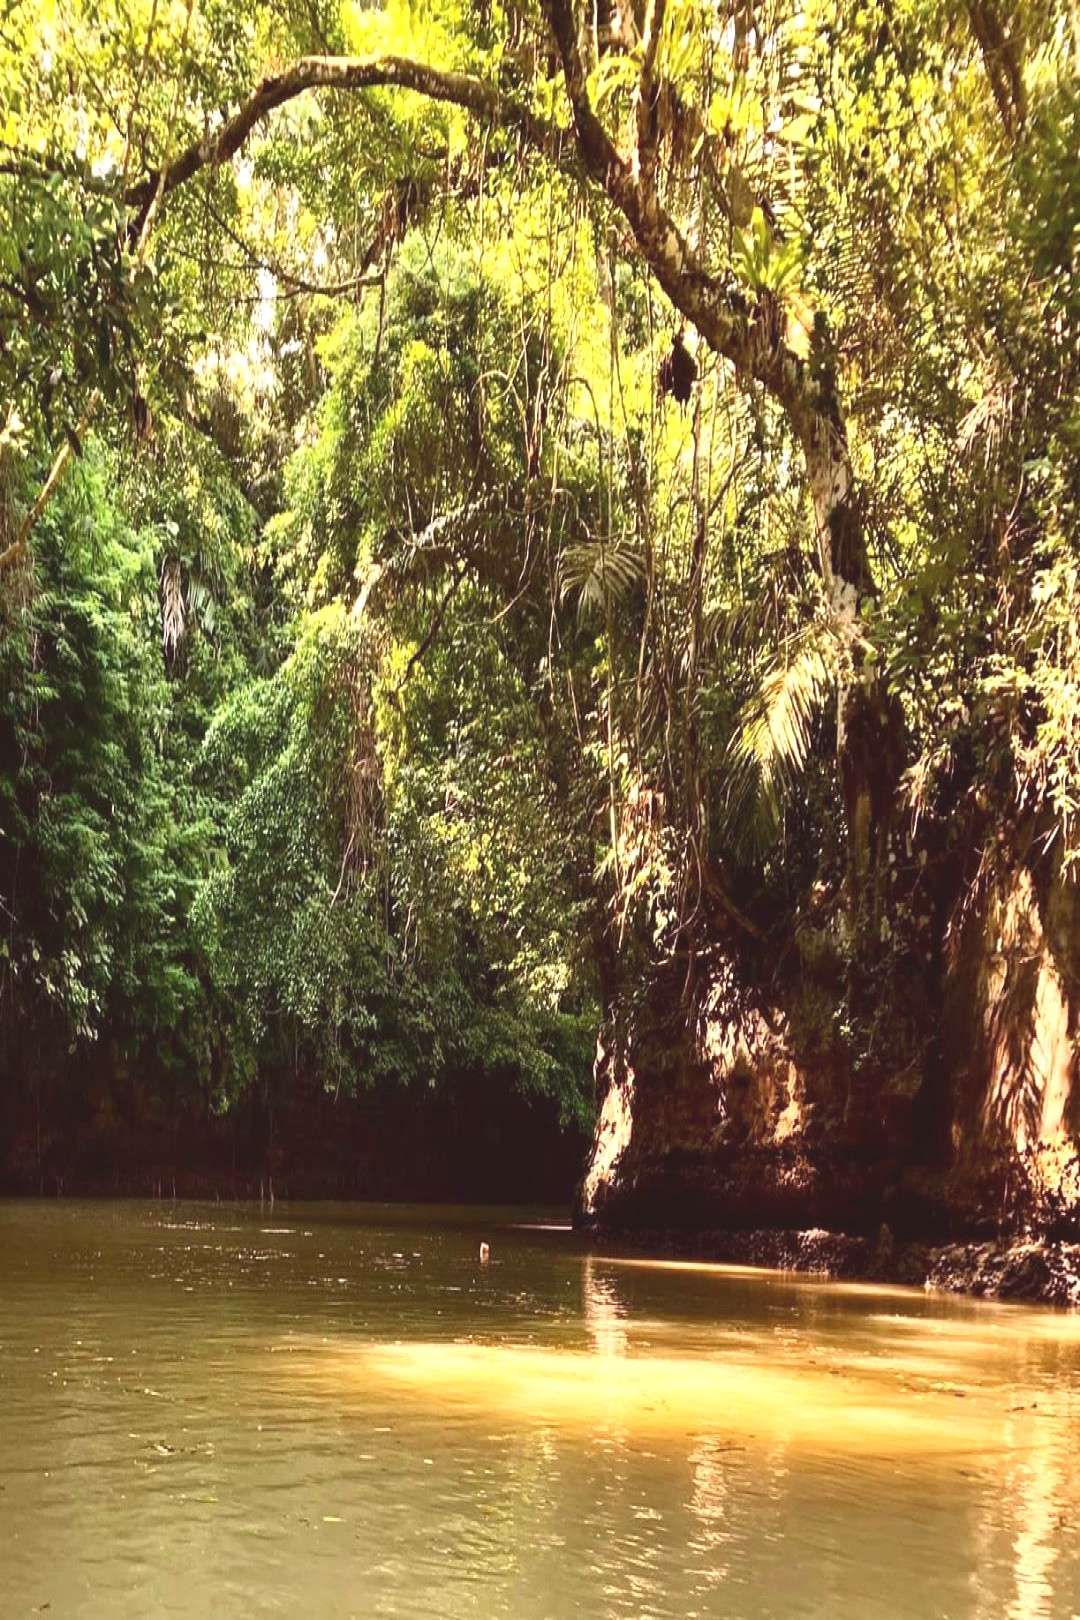 #treeplantoutdoornature #natural #wonder #hiding #behind #bushes #thick #trees #water #true #the #and #of #a A true Natural Wonder hiding behind the thick bushes and trees ofYou can find indonesia tra...